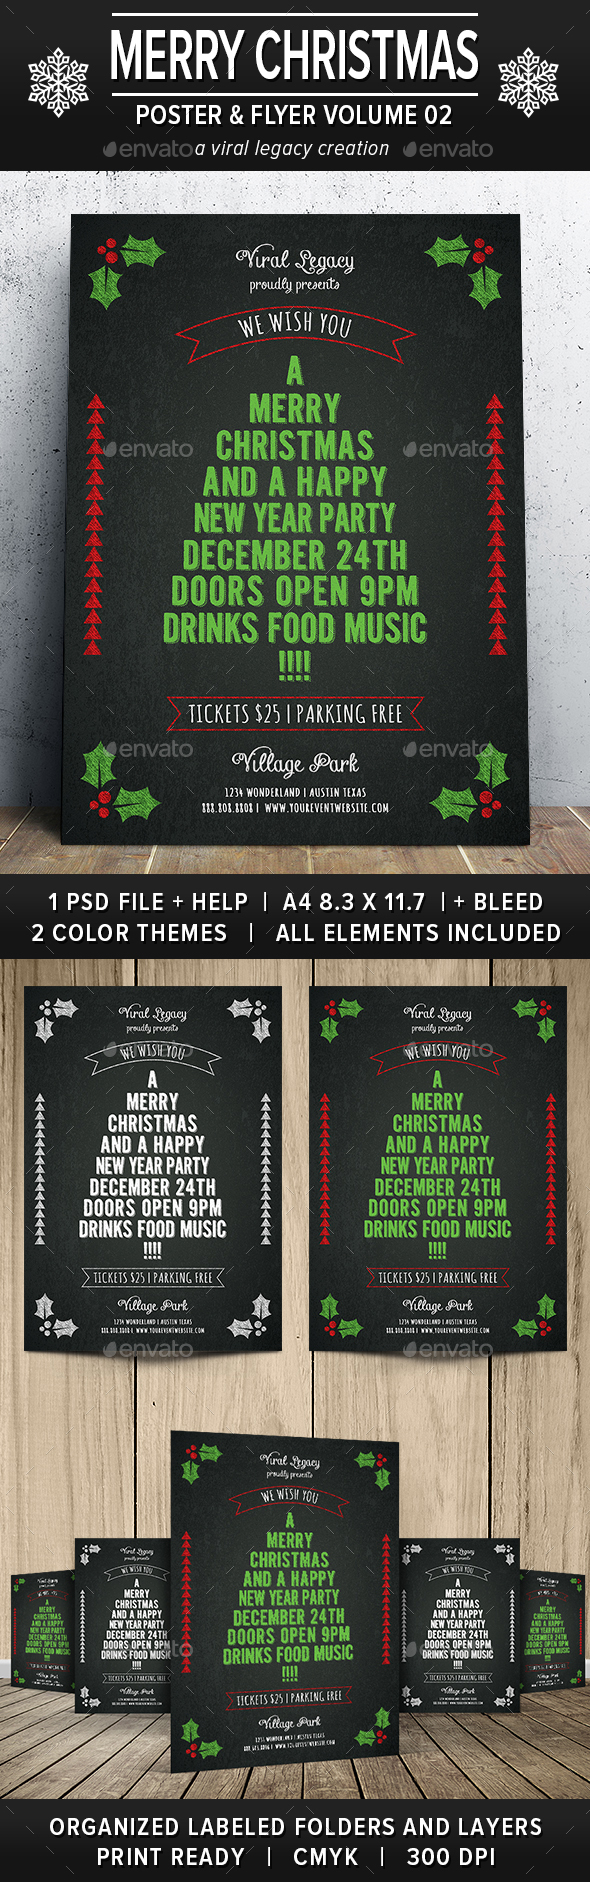 Merry Christmas Poster / Flyer V02 - Events Flyers